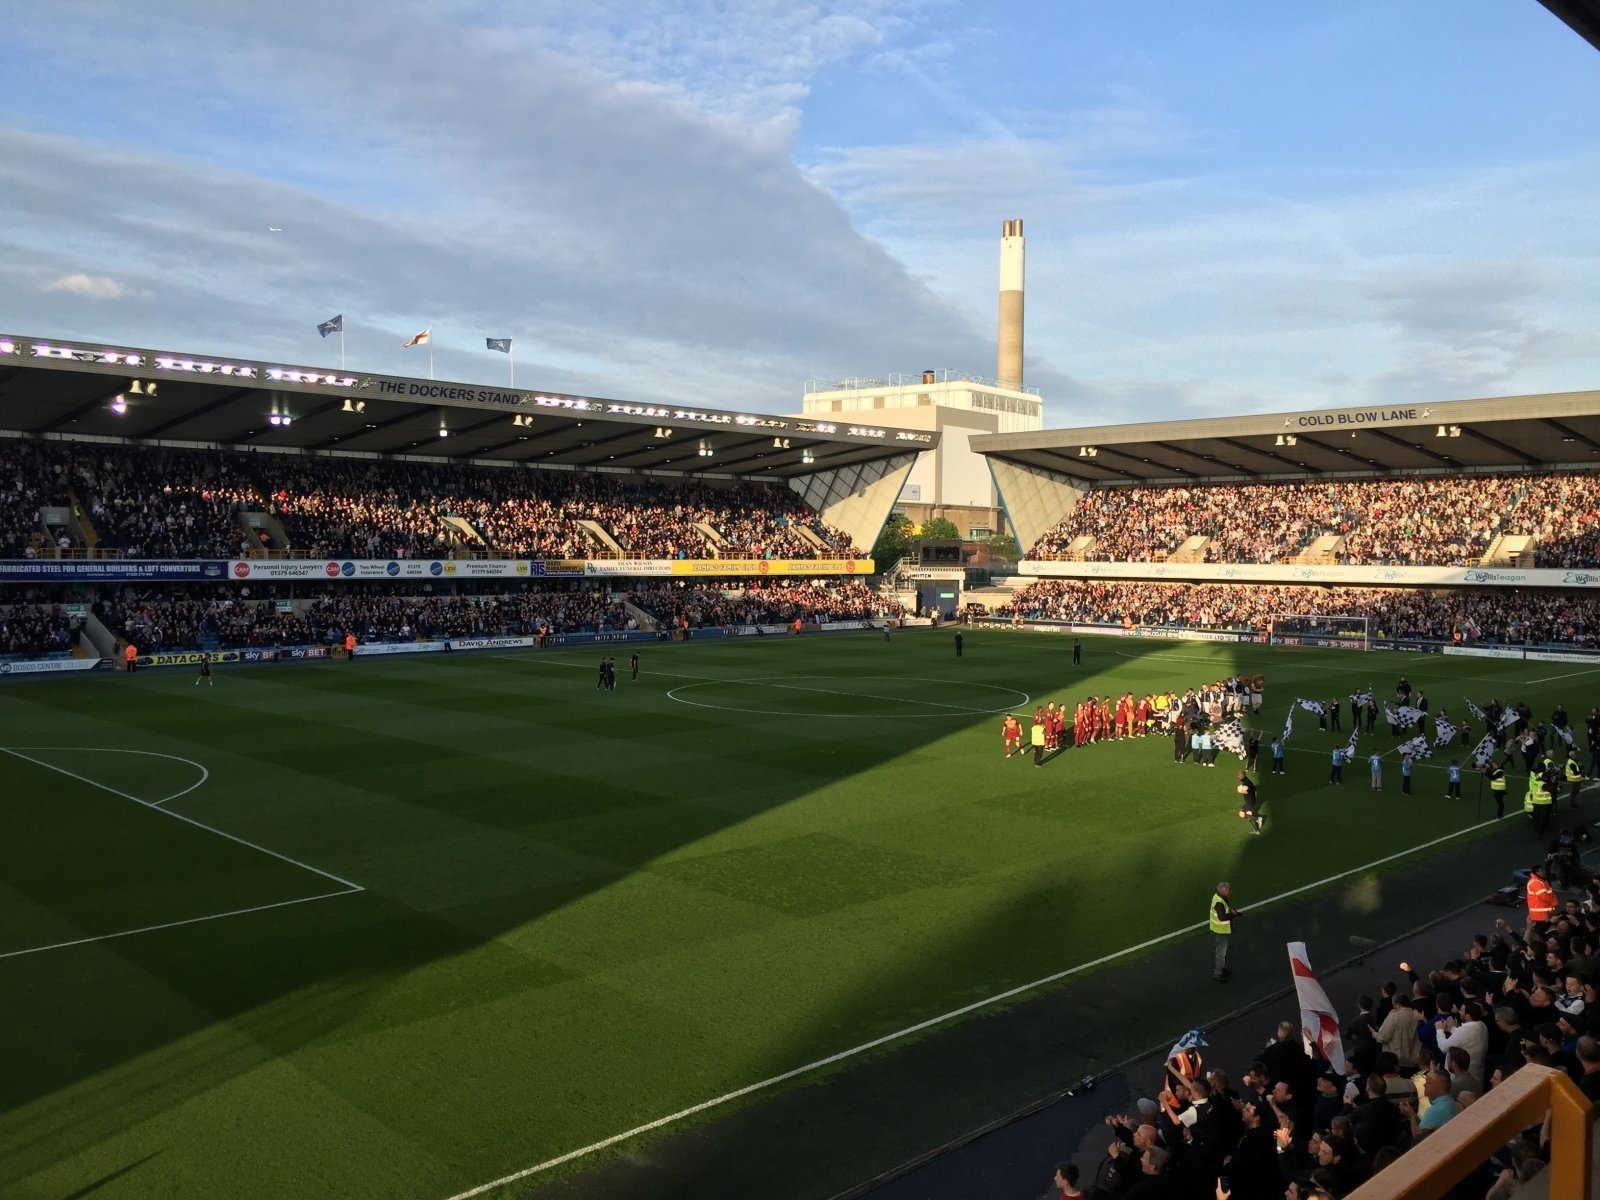 Leeds United: Leeds United's Visit To Millwall Looks A Little More